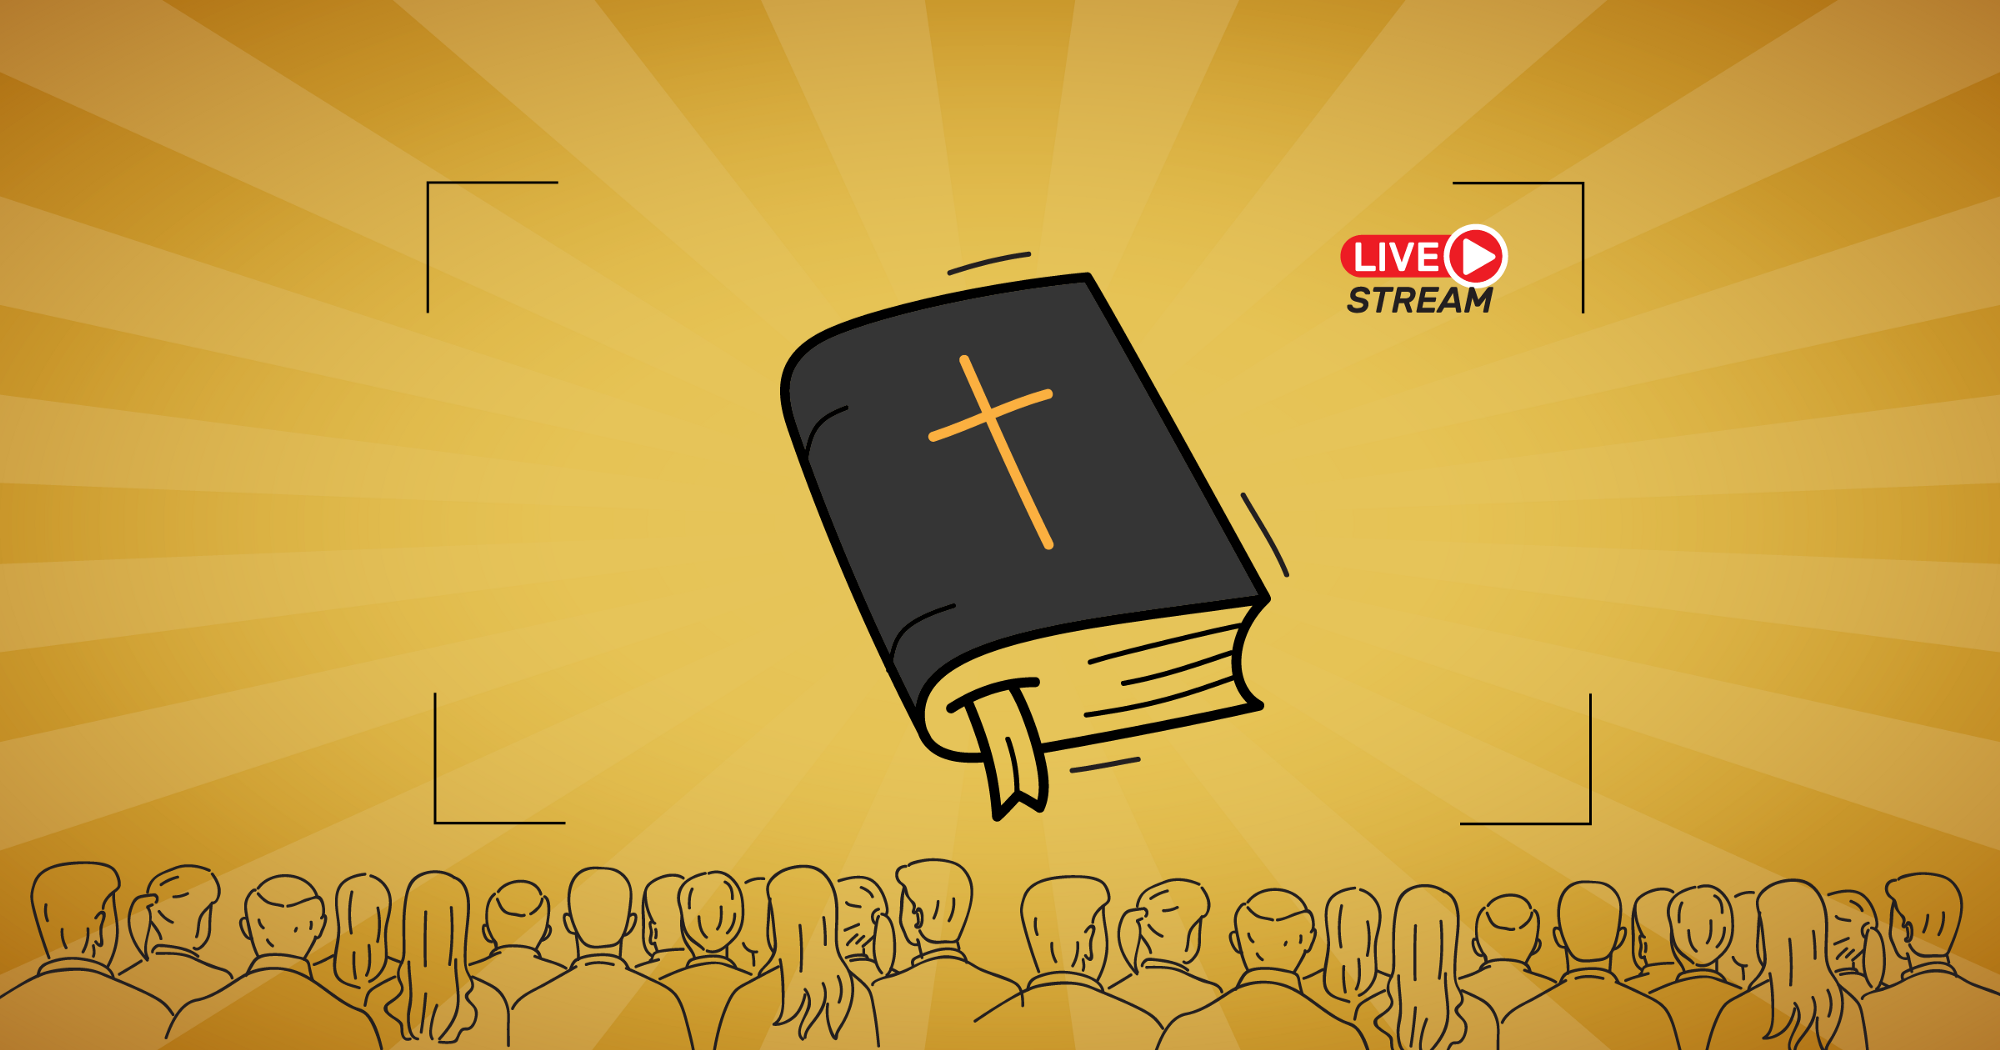 How can church benefit from live streaming?